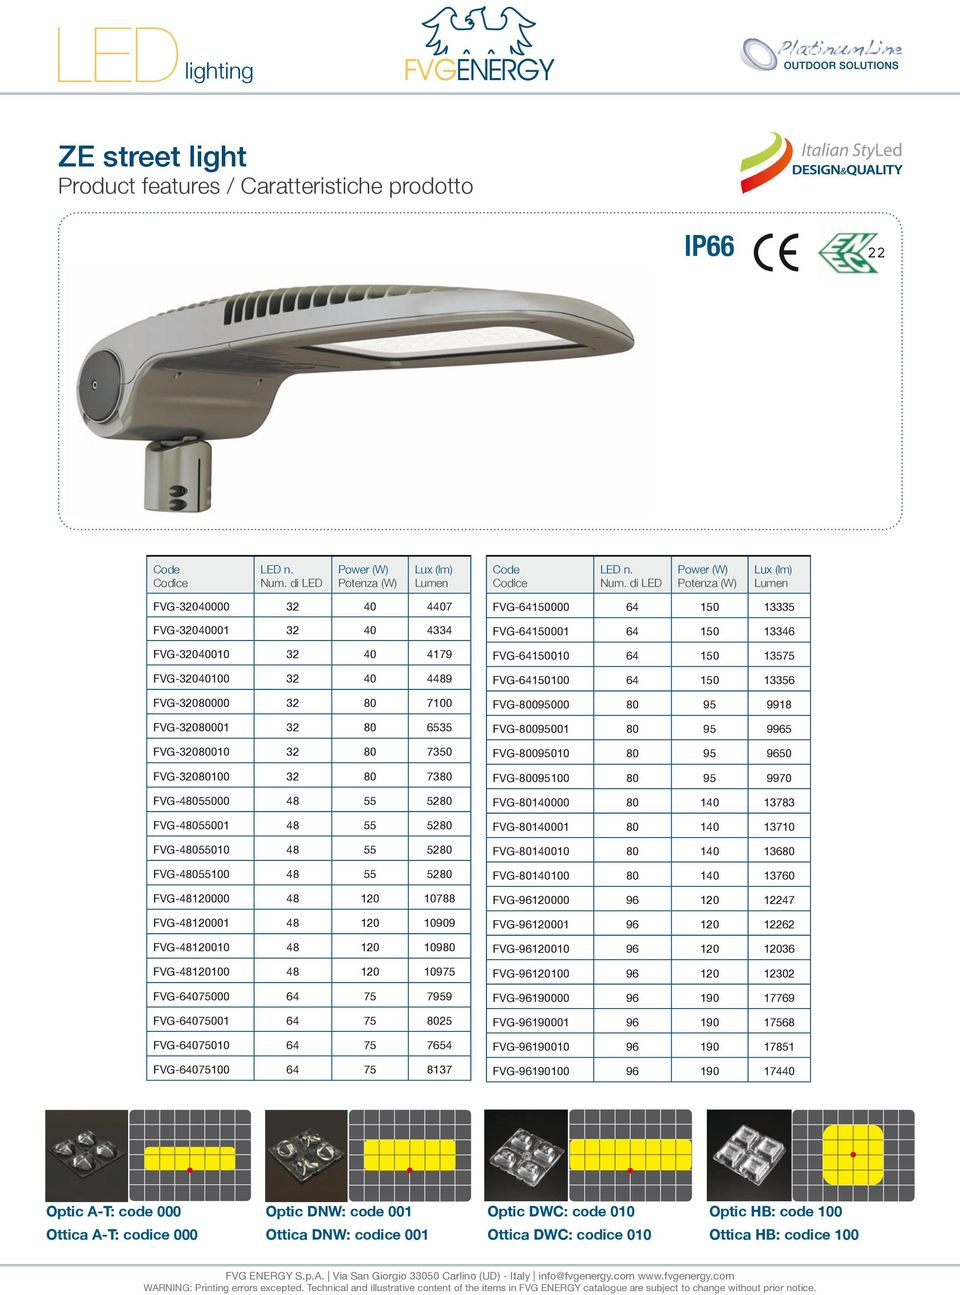 di LED Power (W) Potenza (W) Lux (lm) Lumen FVG-32040000 32 40 4407 FVG-32040001 32 40 4334 FVG-32040010 32 40 4179 FVG-32040100 32 40 4489 FVG-32080000 32 80 7100 FVG-32080001 32 80 6535